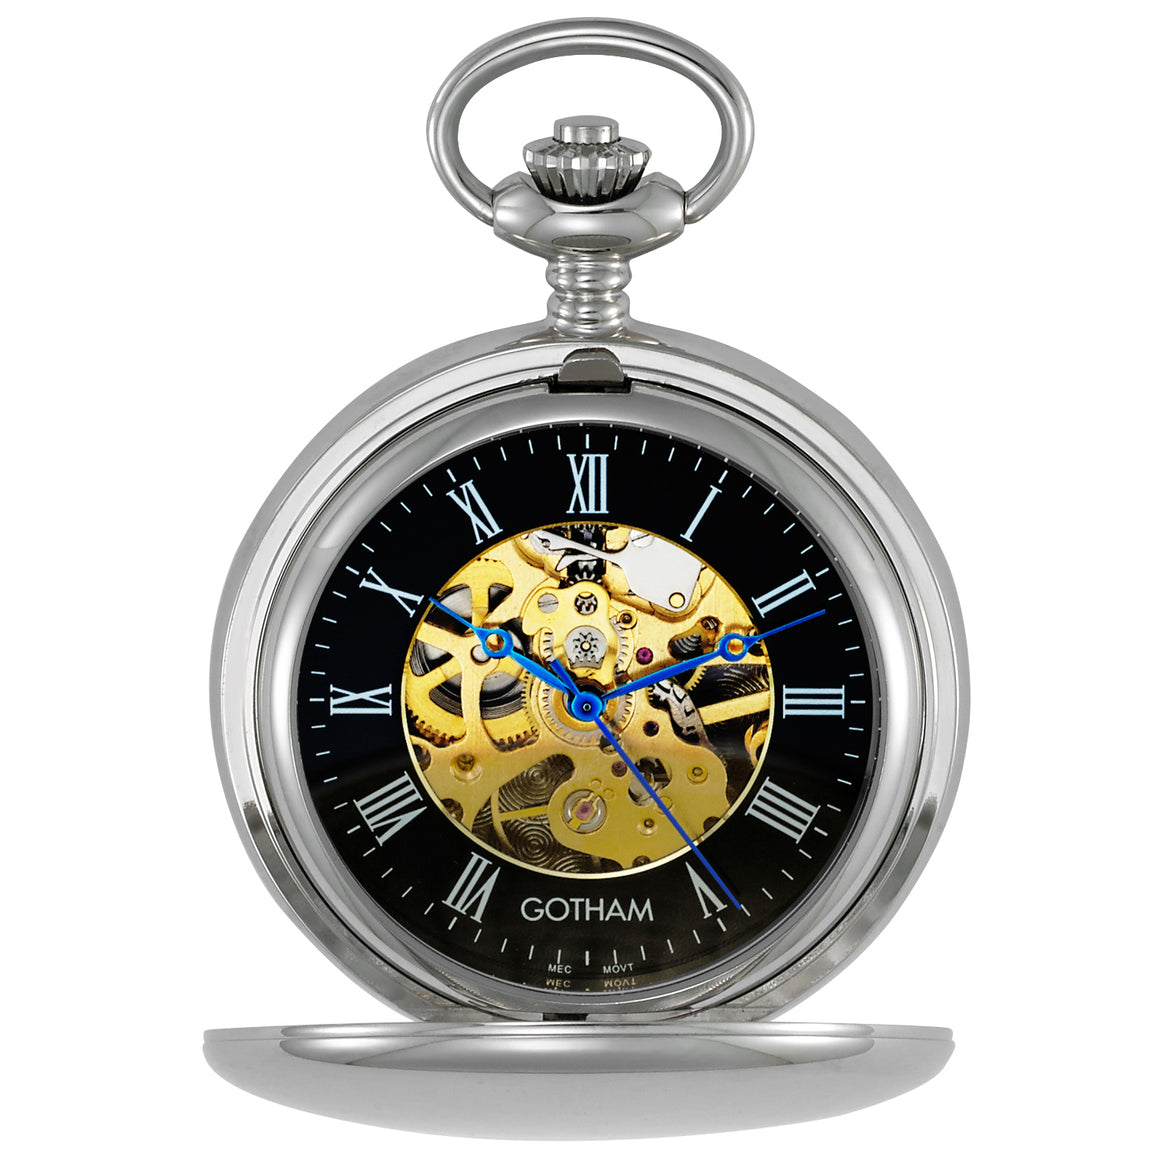 Gotham Men's Silver-Tone 17 Jewel Mechanical Double Hunter Pocket Watch # GWC14050SBG - Gotham Watch